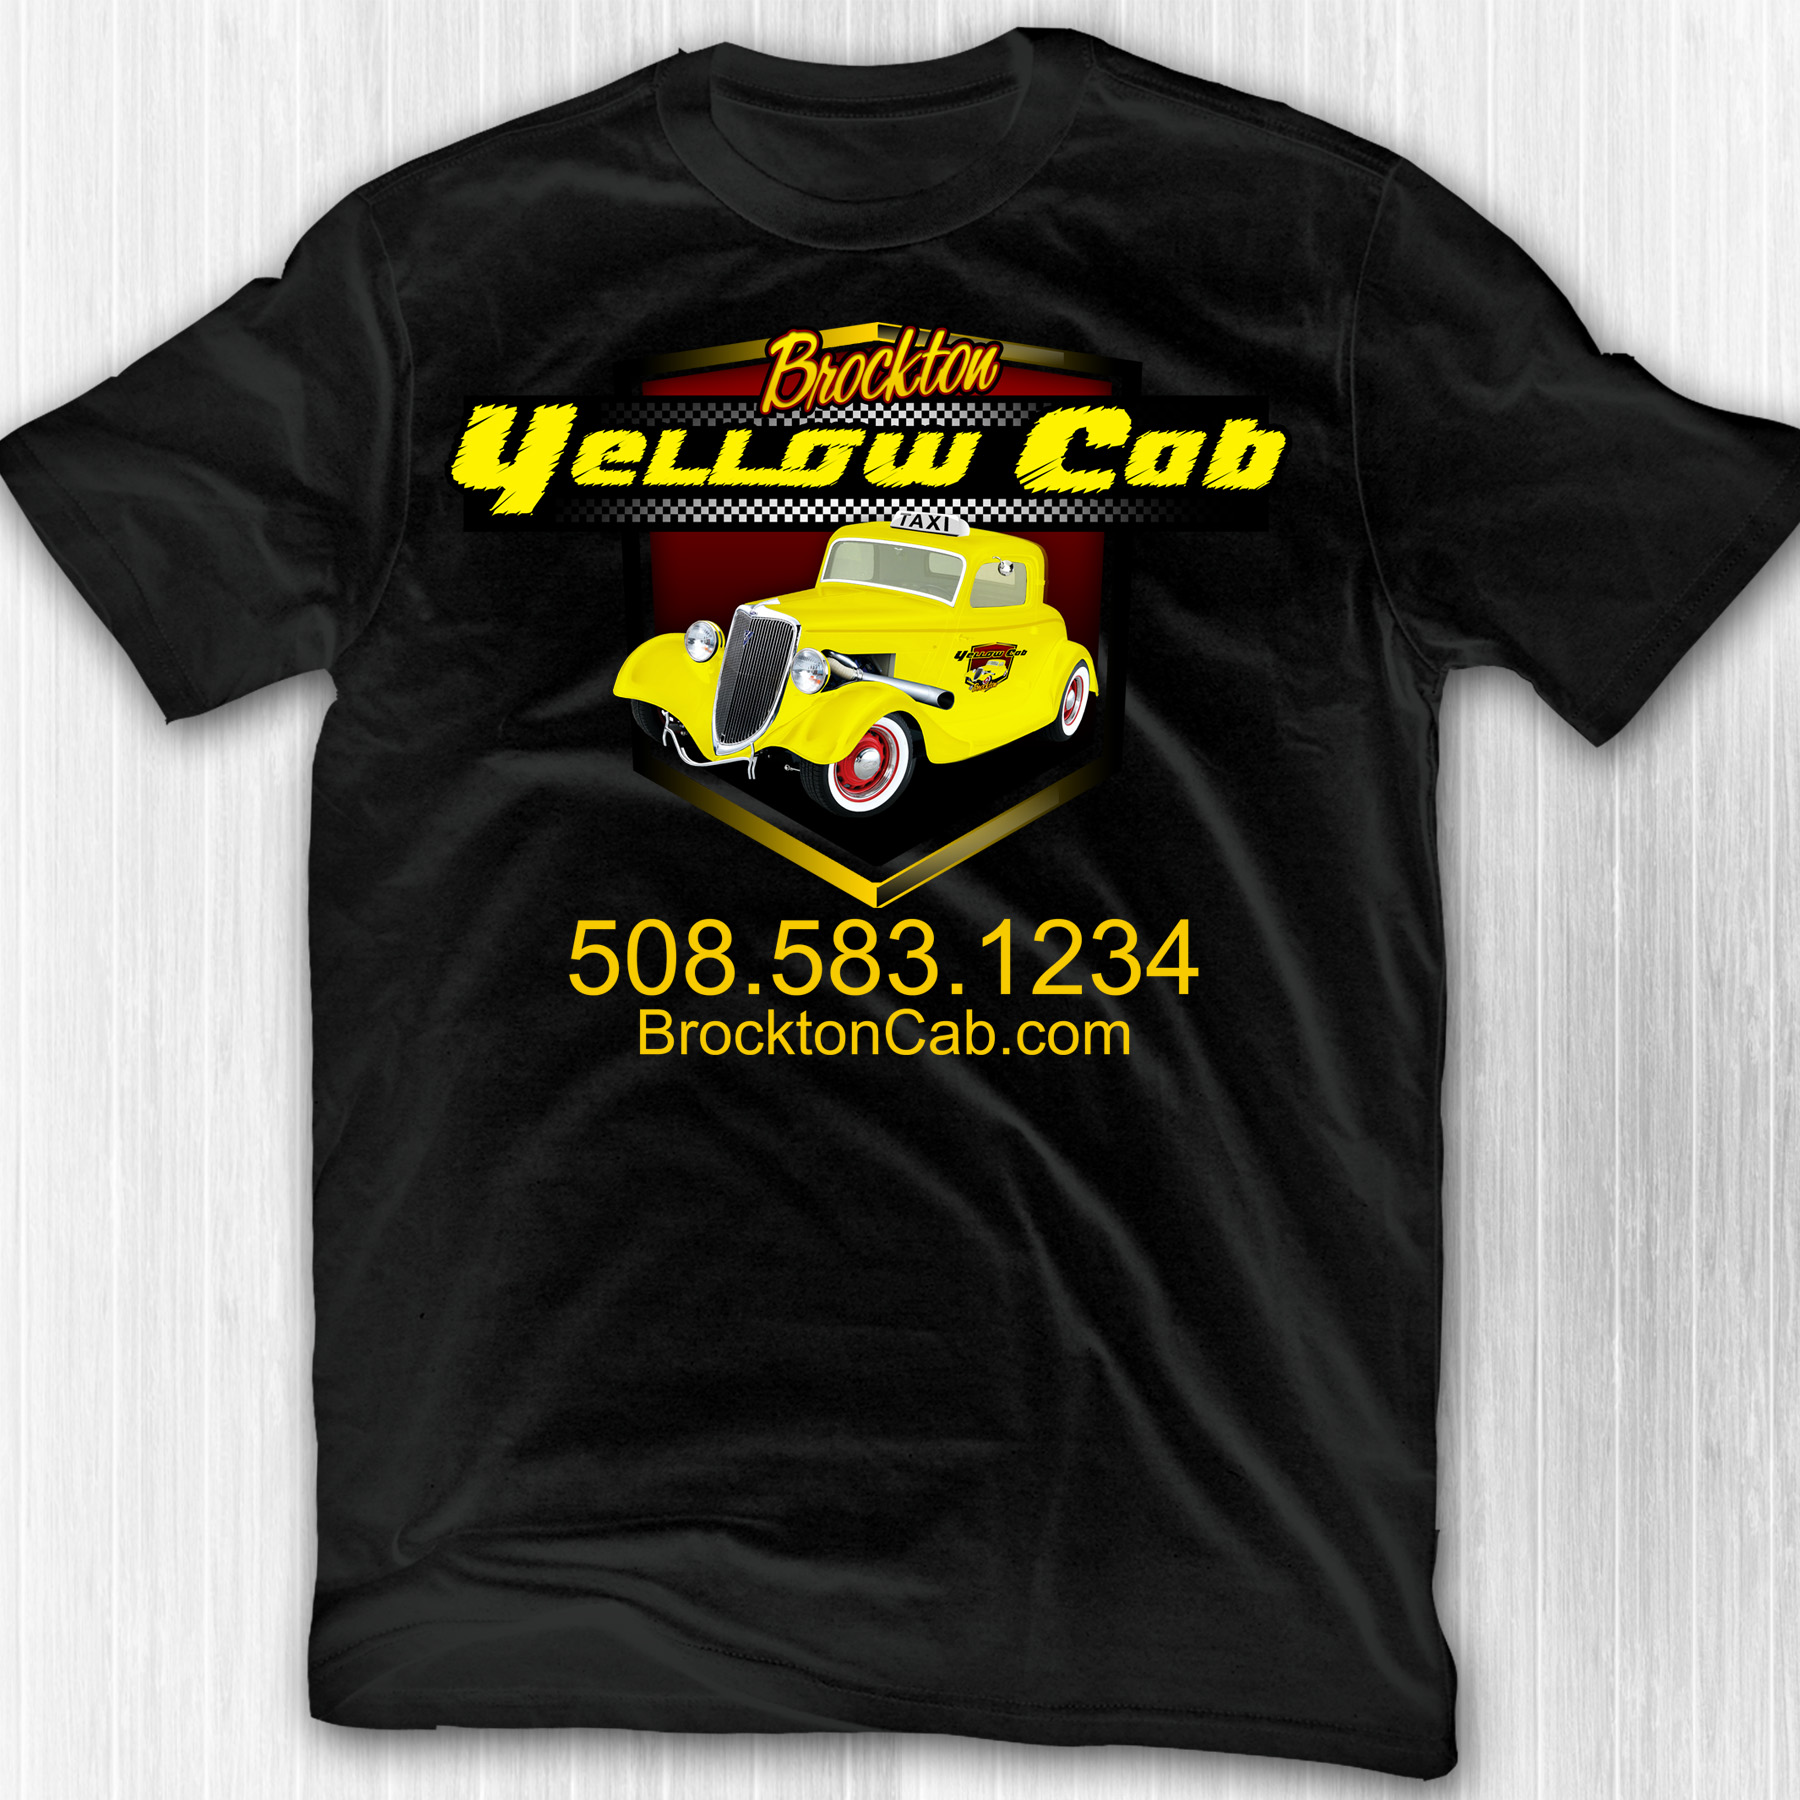 Yellow cab shirt